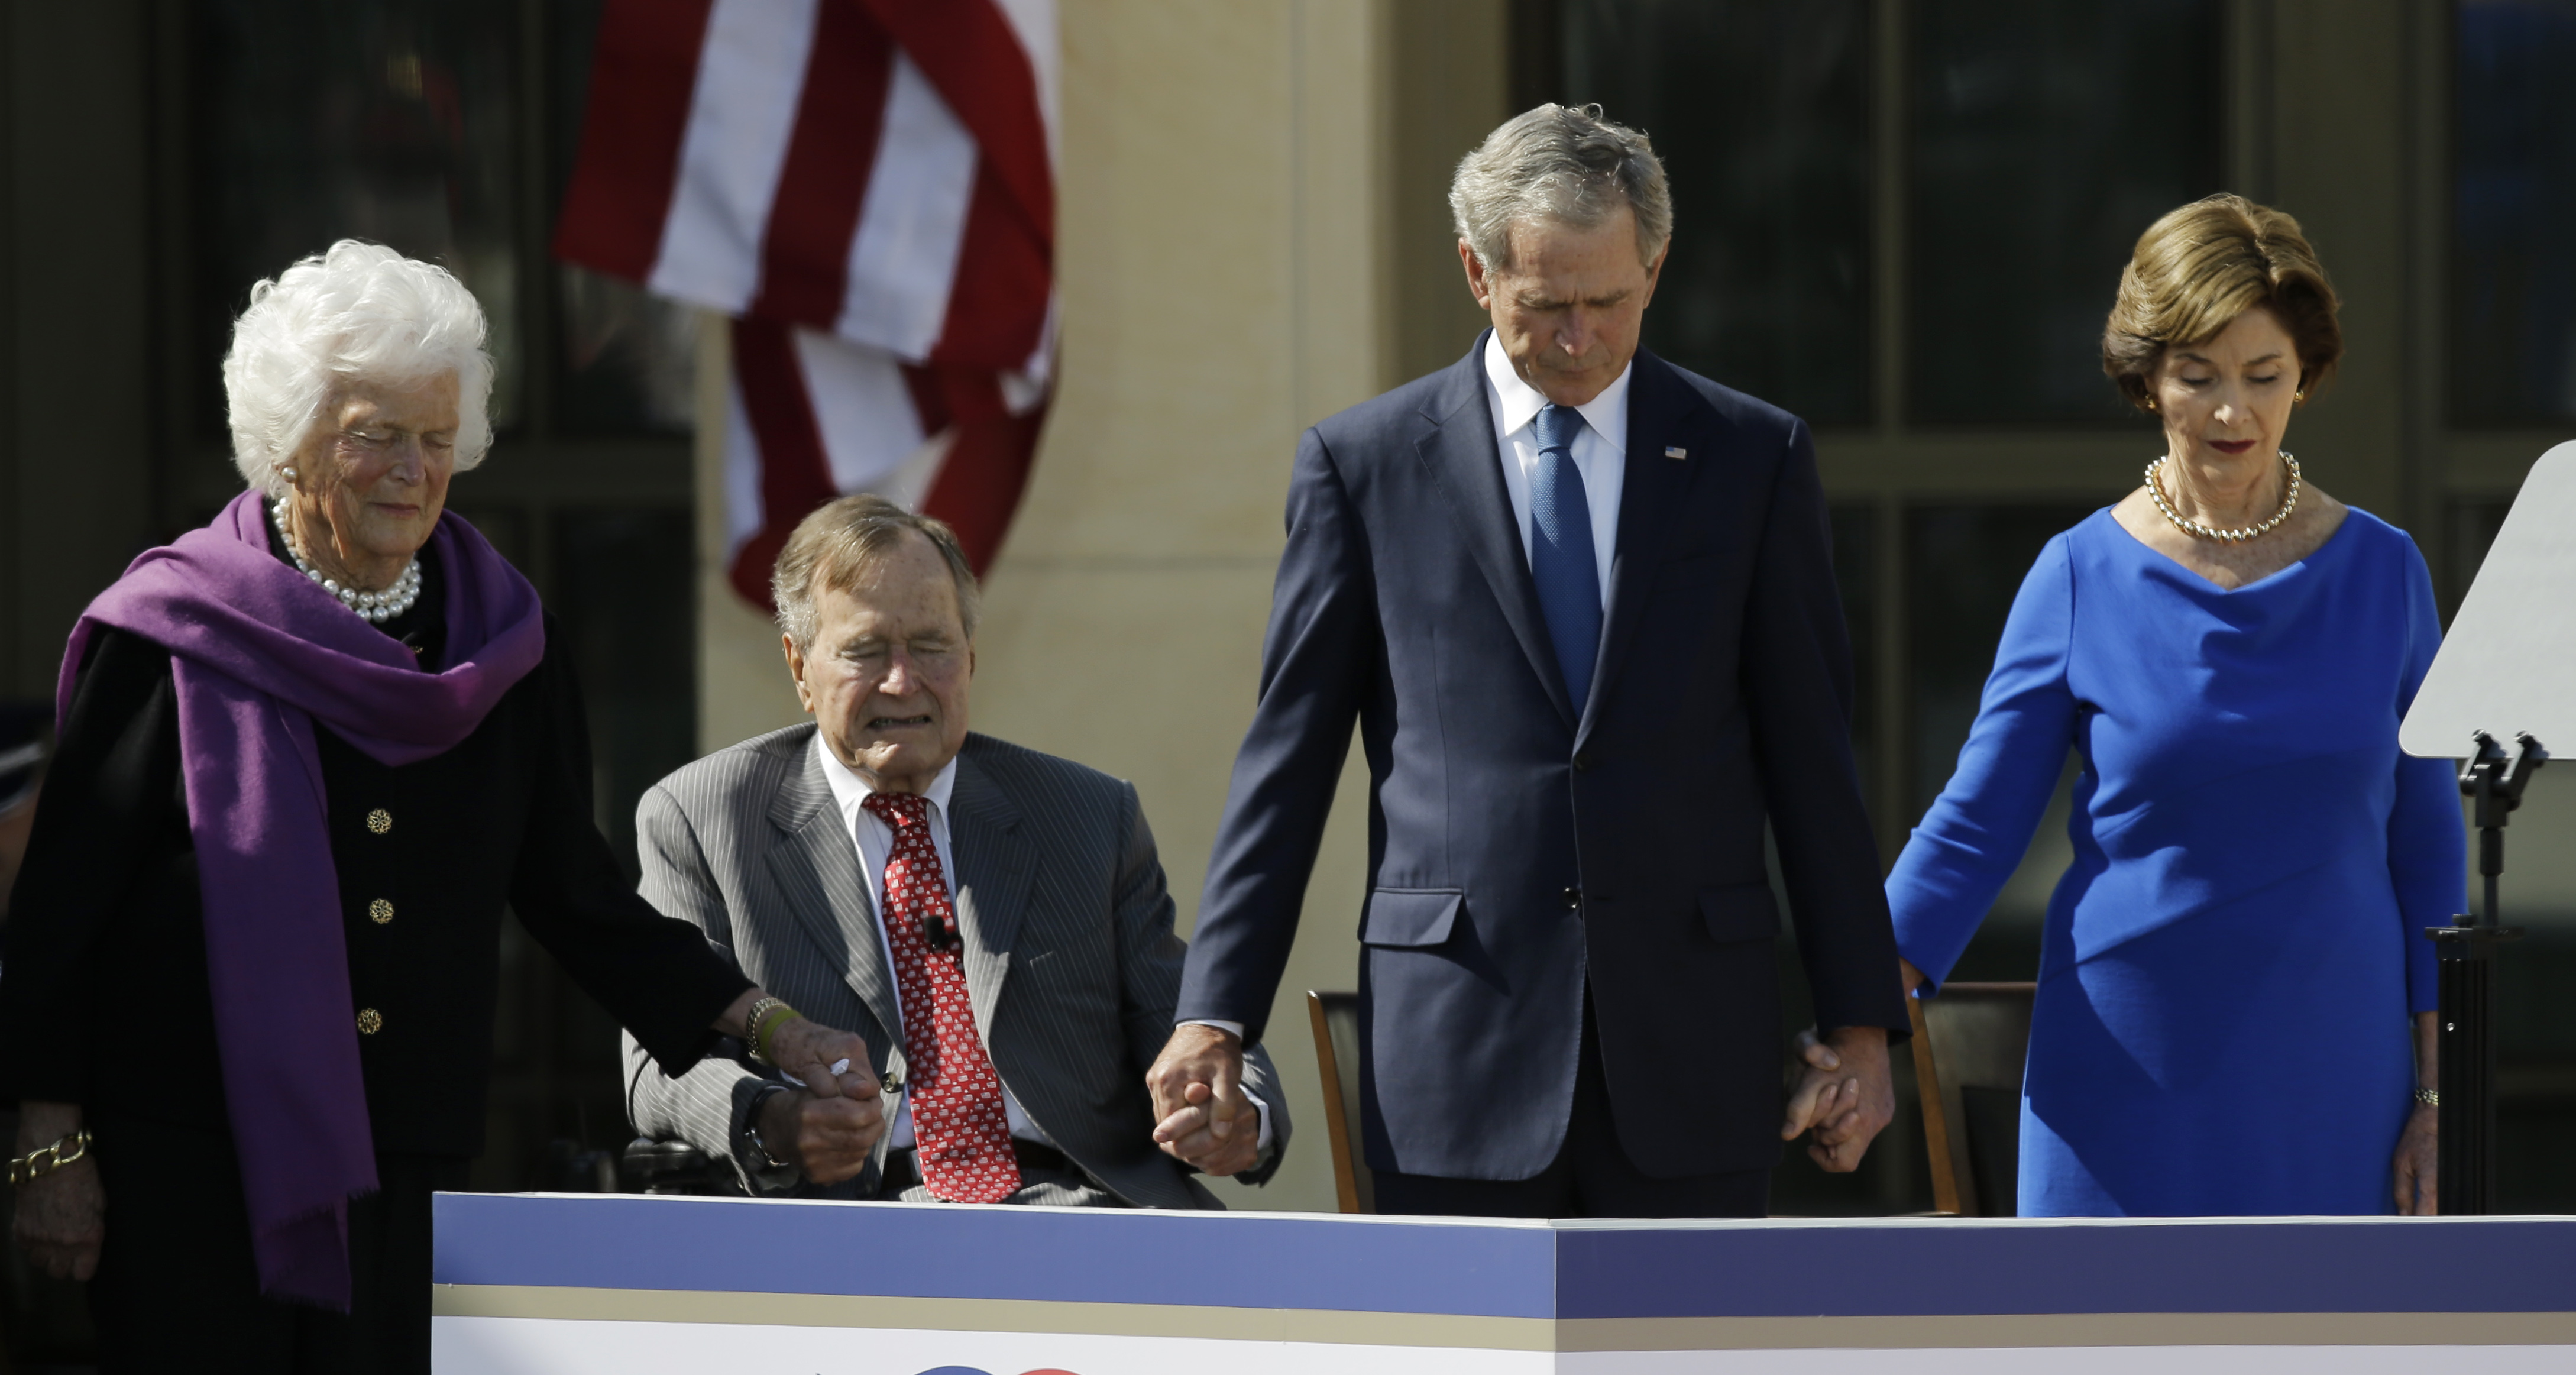 <div class='meta'><div class='origin-logo' data-origin='none'></div><span class='caption-text' data-credit='AP Photo/David J. Phillip'>From left, Barbara Bush, George H.W. Bush, George W. Bush and Laura Bush holds hands during the dedication of the George W. Bush Presidential Center.</span></div>